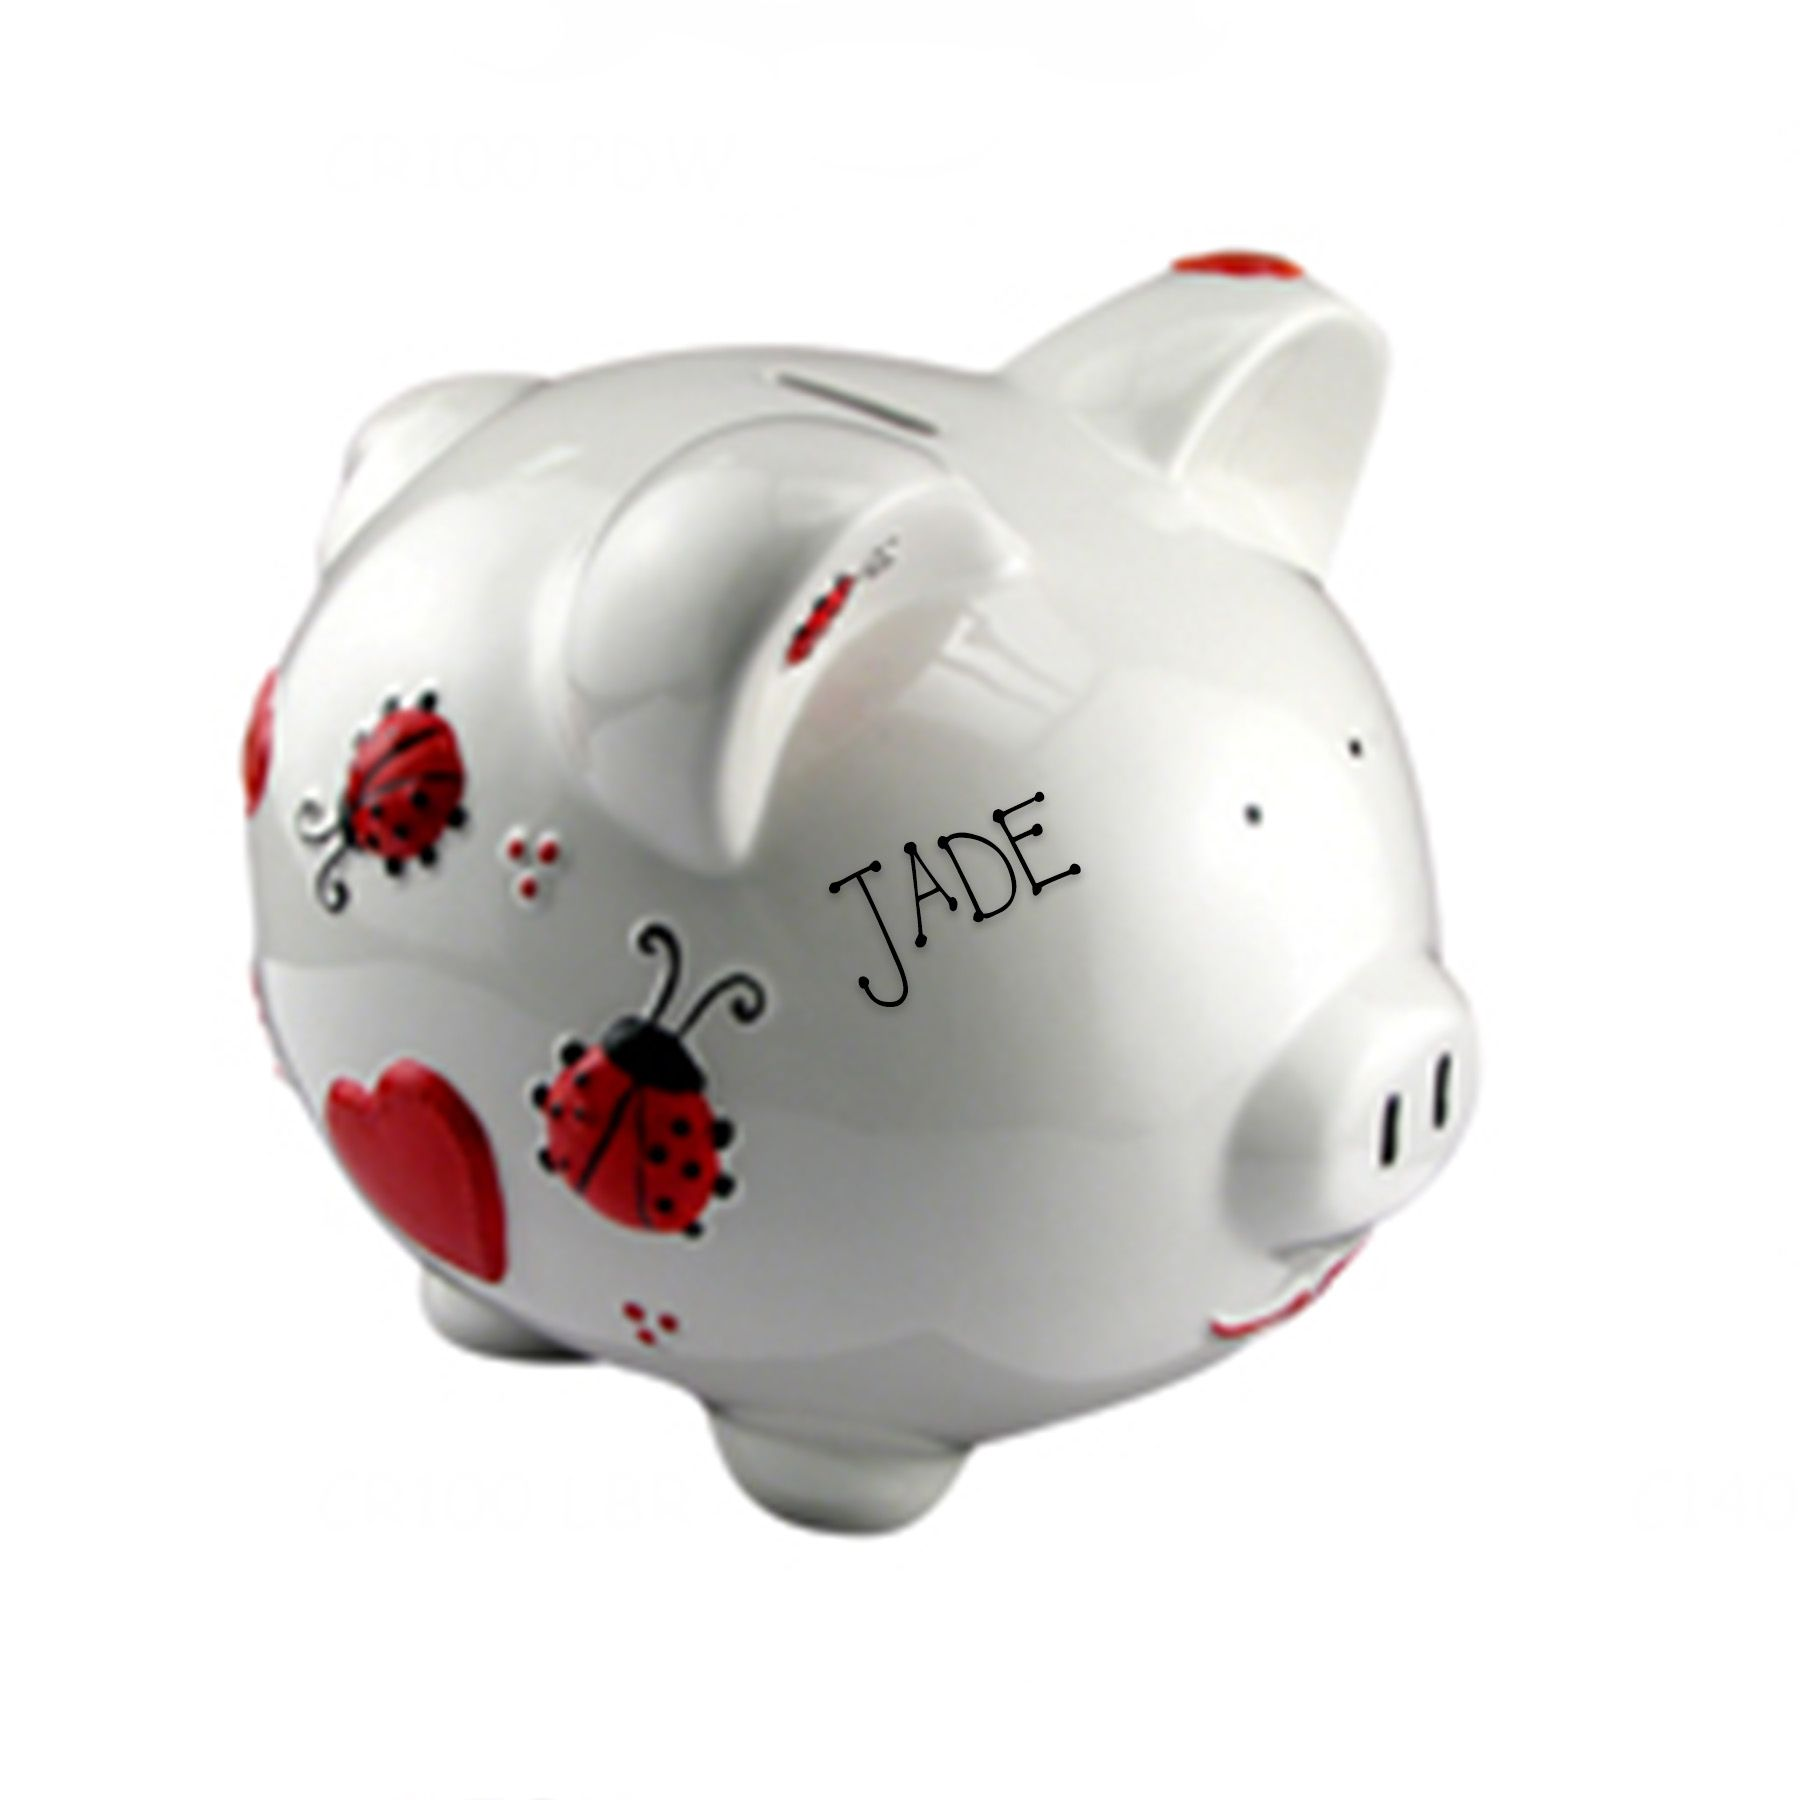 this ladybug piggy bank is absolutely adorable and makes a great  - personalized piggy bank ladybug